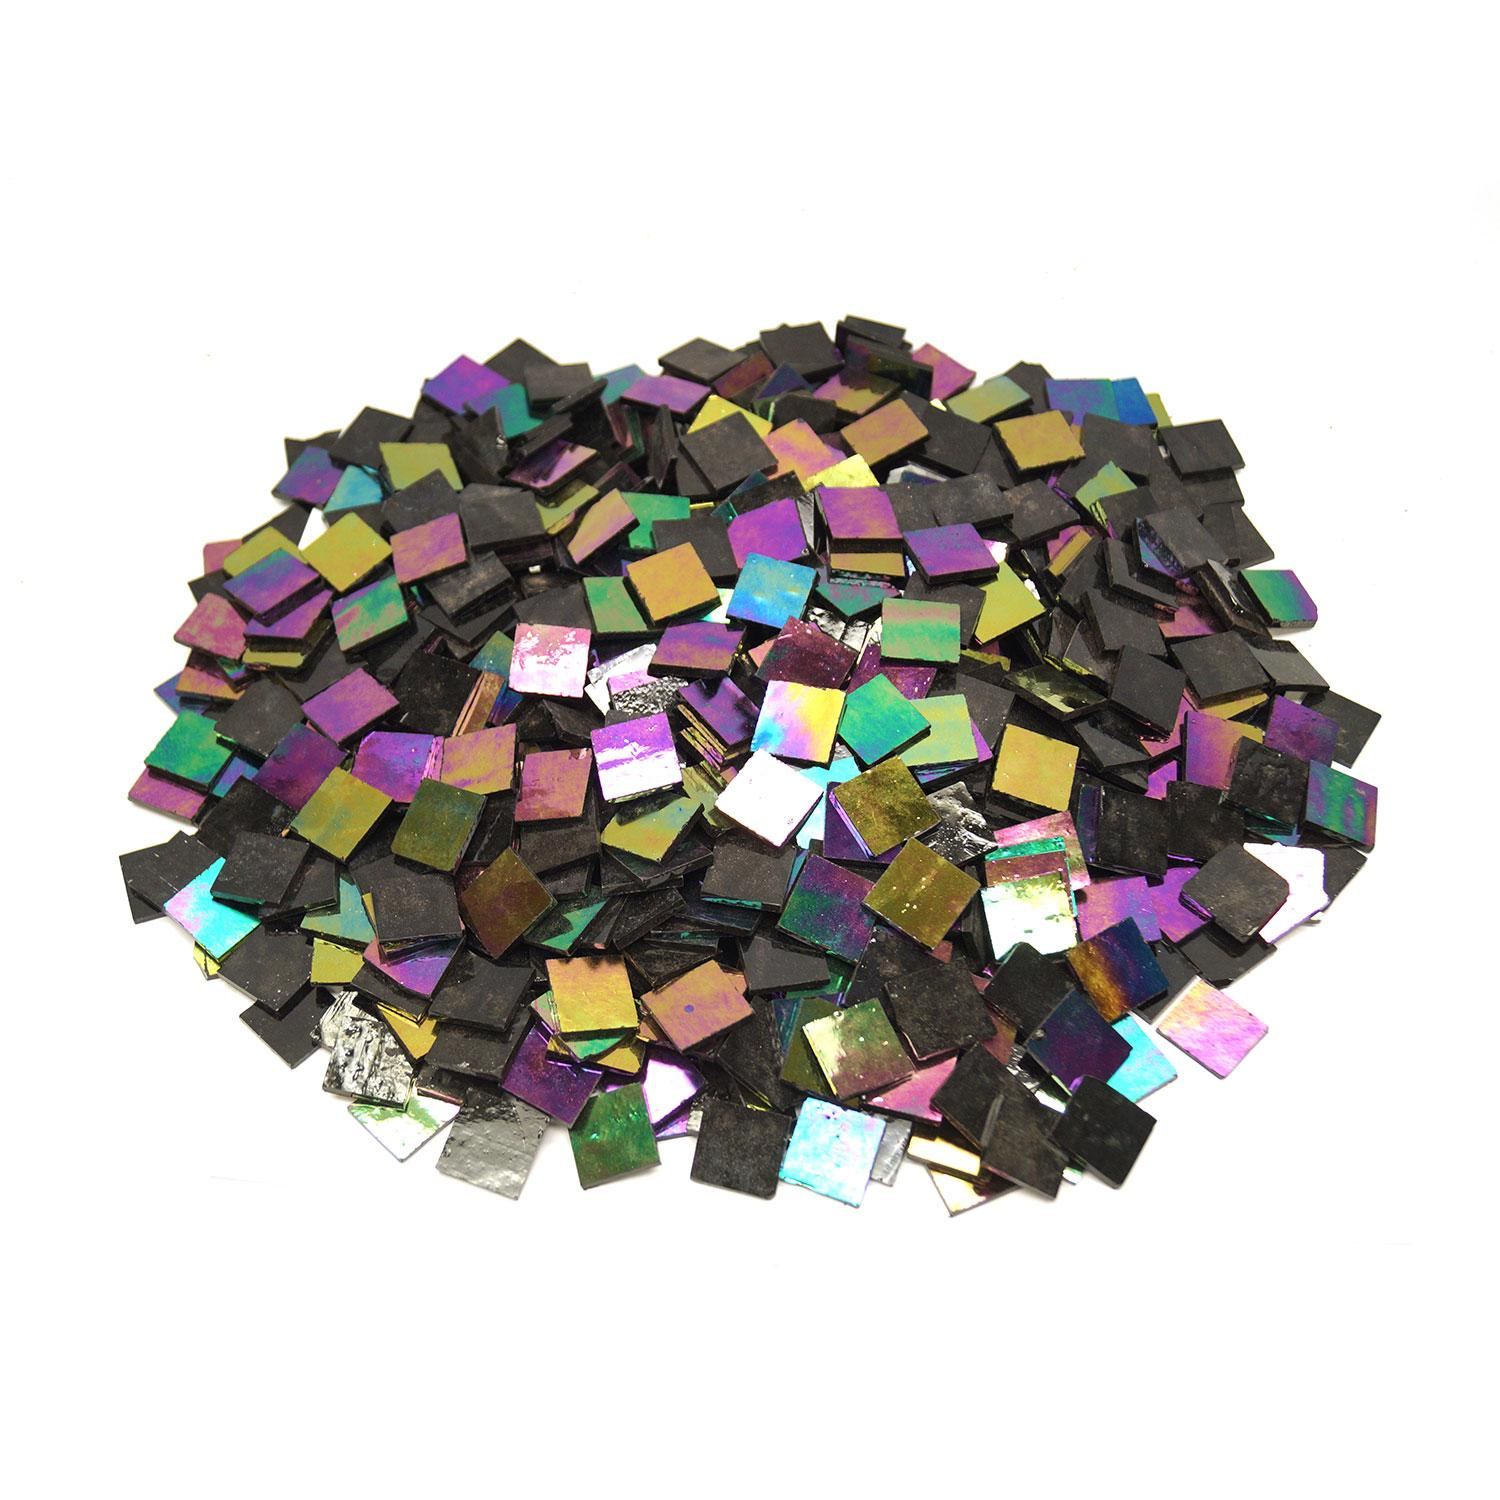 3/4 Black Opaque Iridized Stained Glass Chips - 700 Pieces